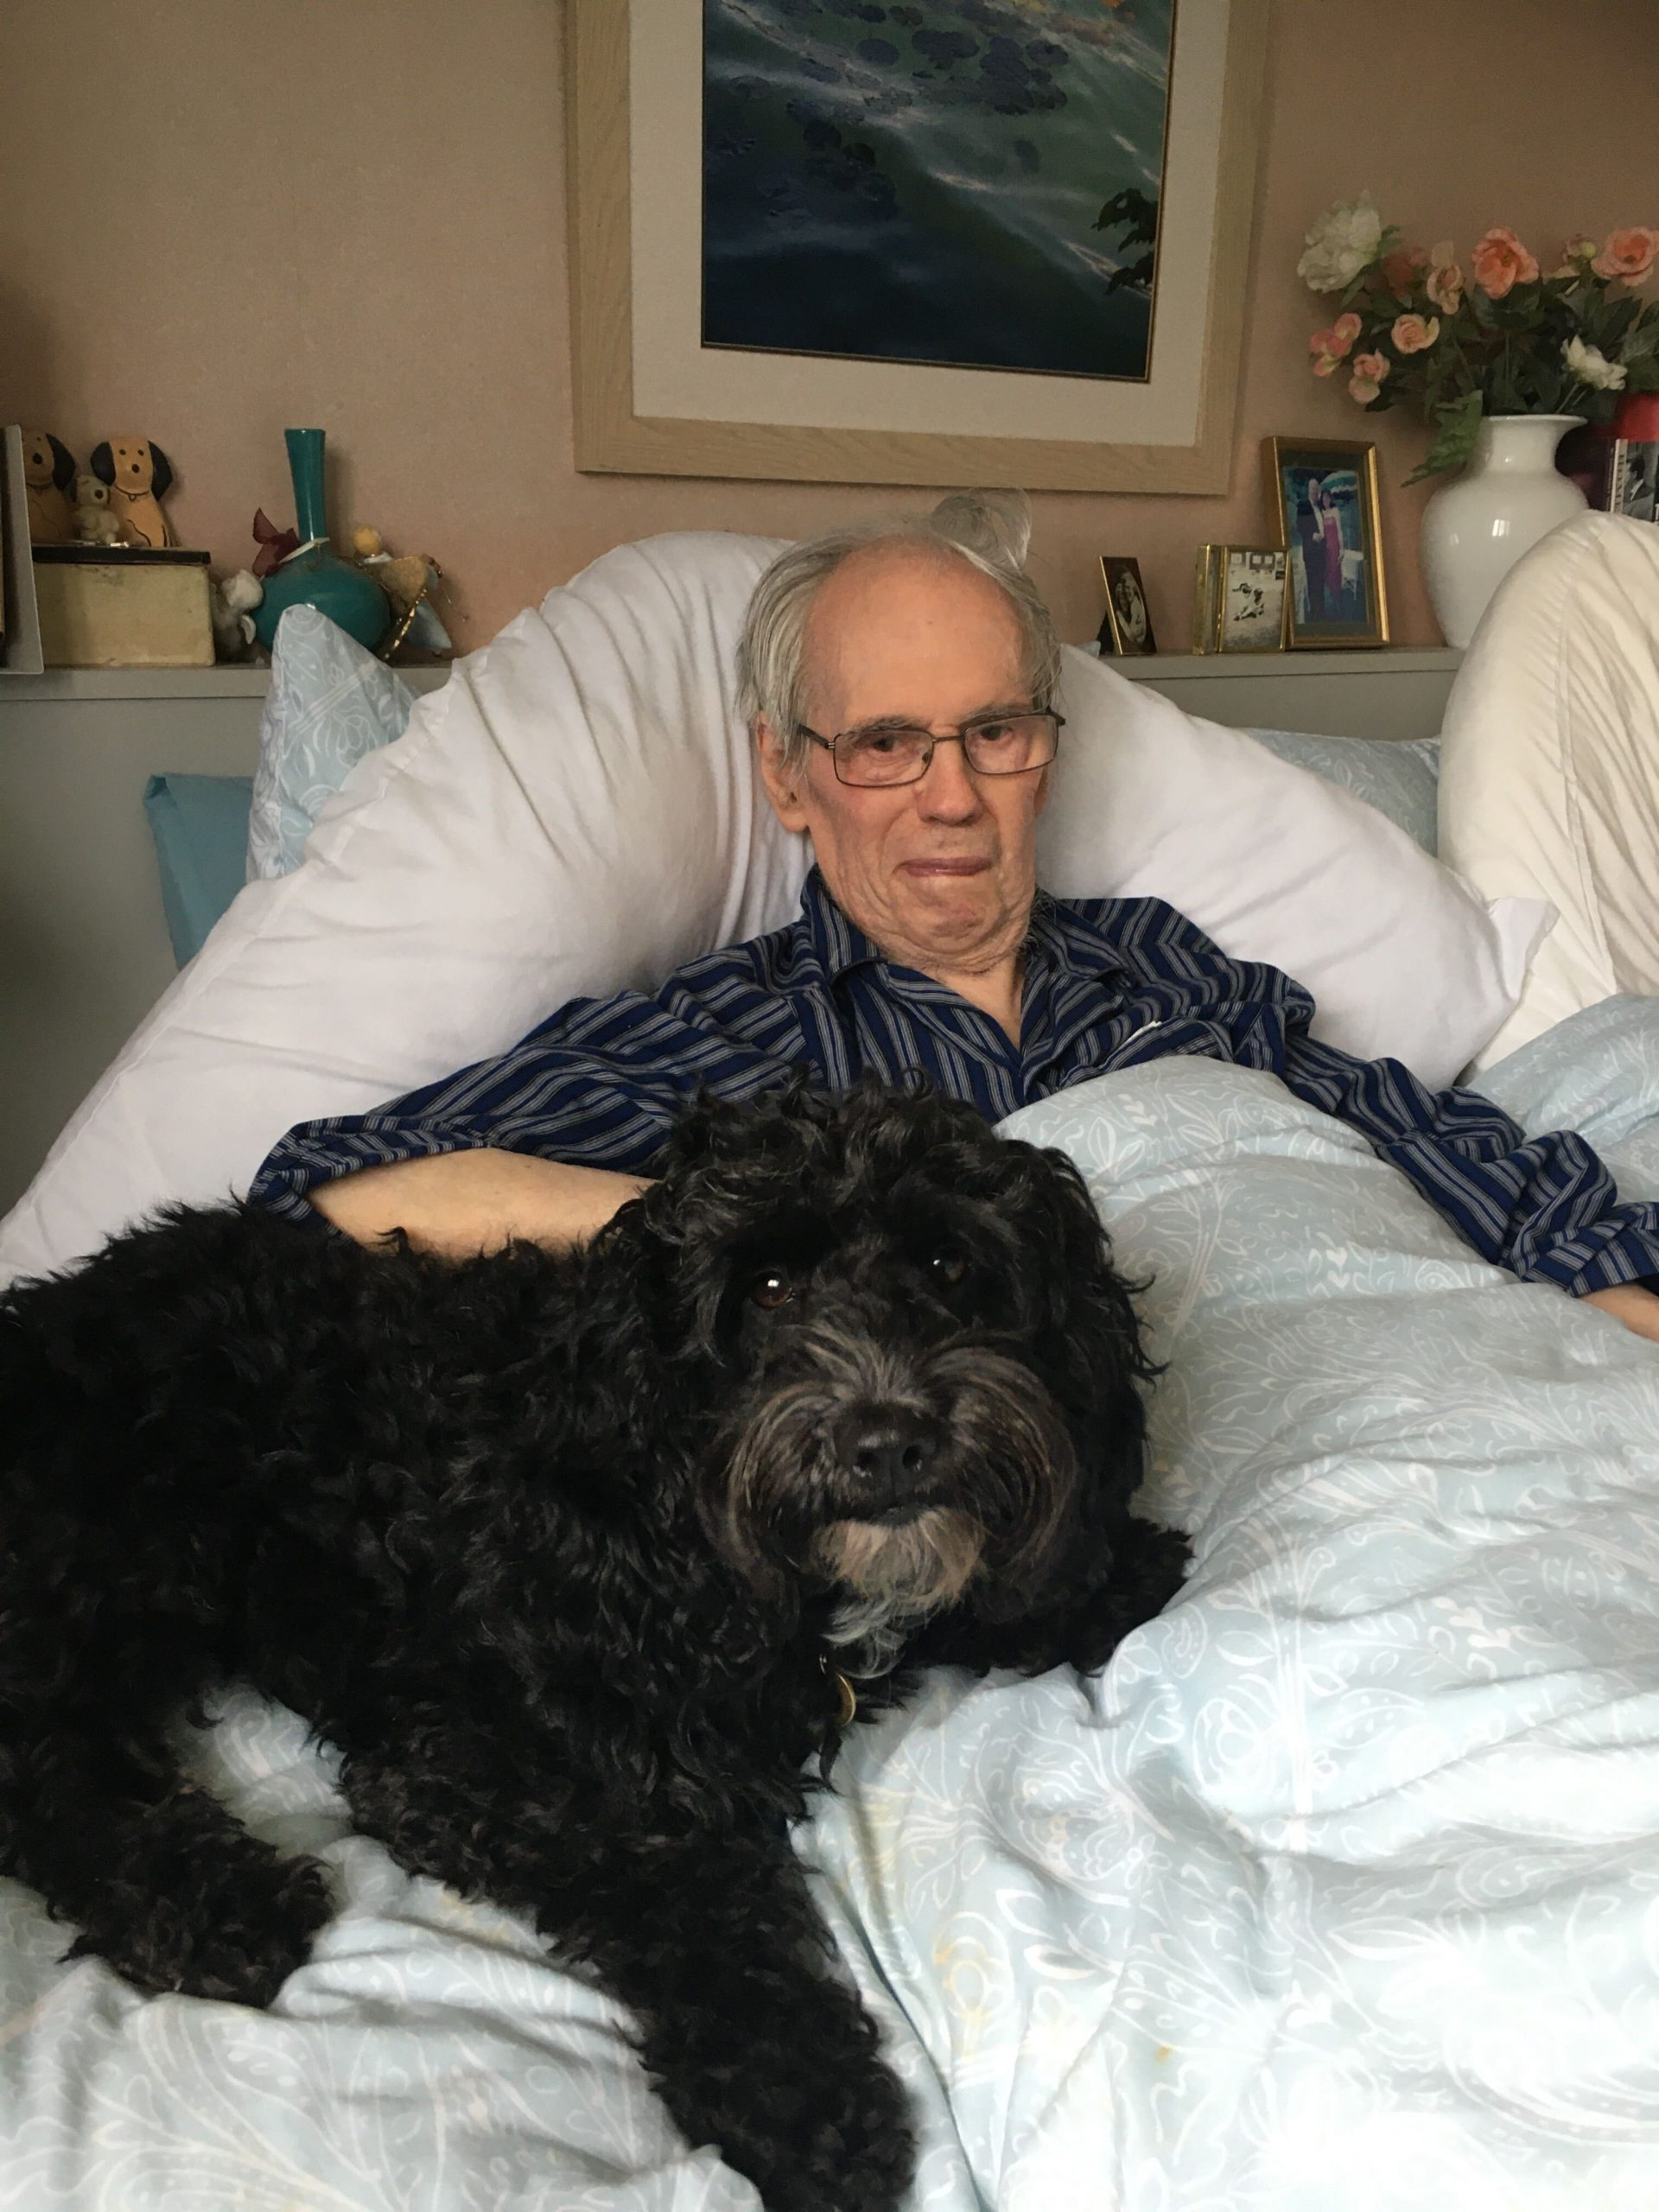 Pets and the Elderly: The Benefits of a Furry Friend